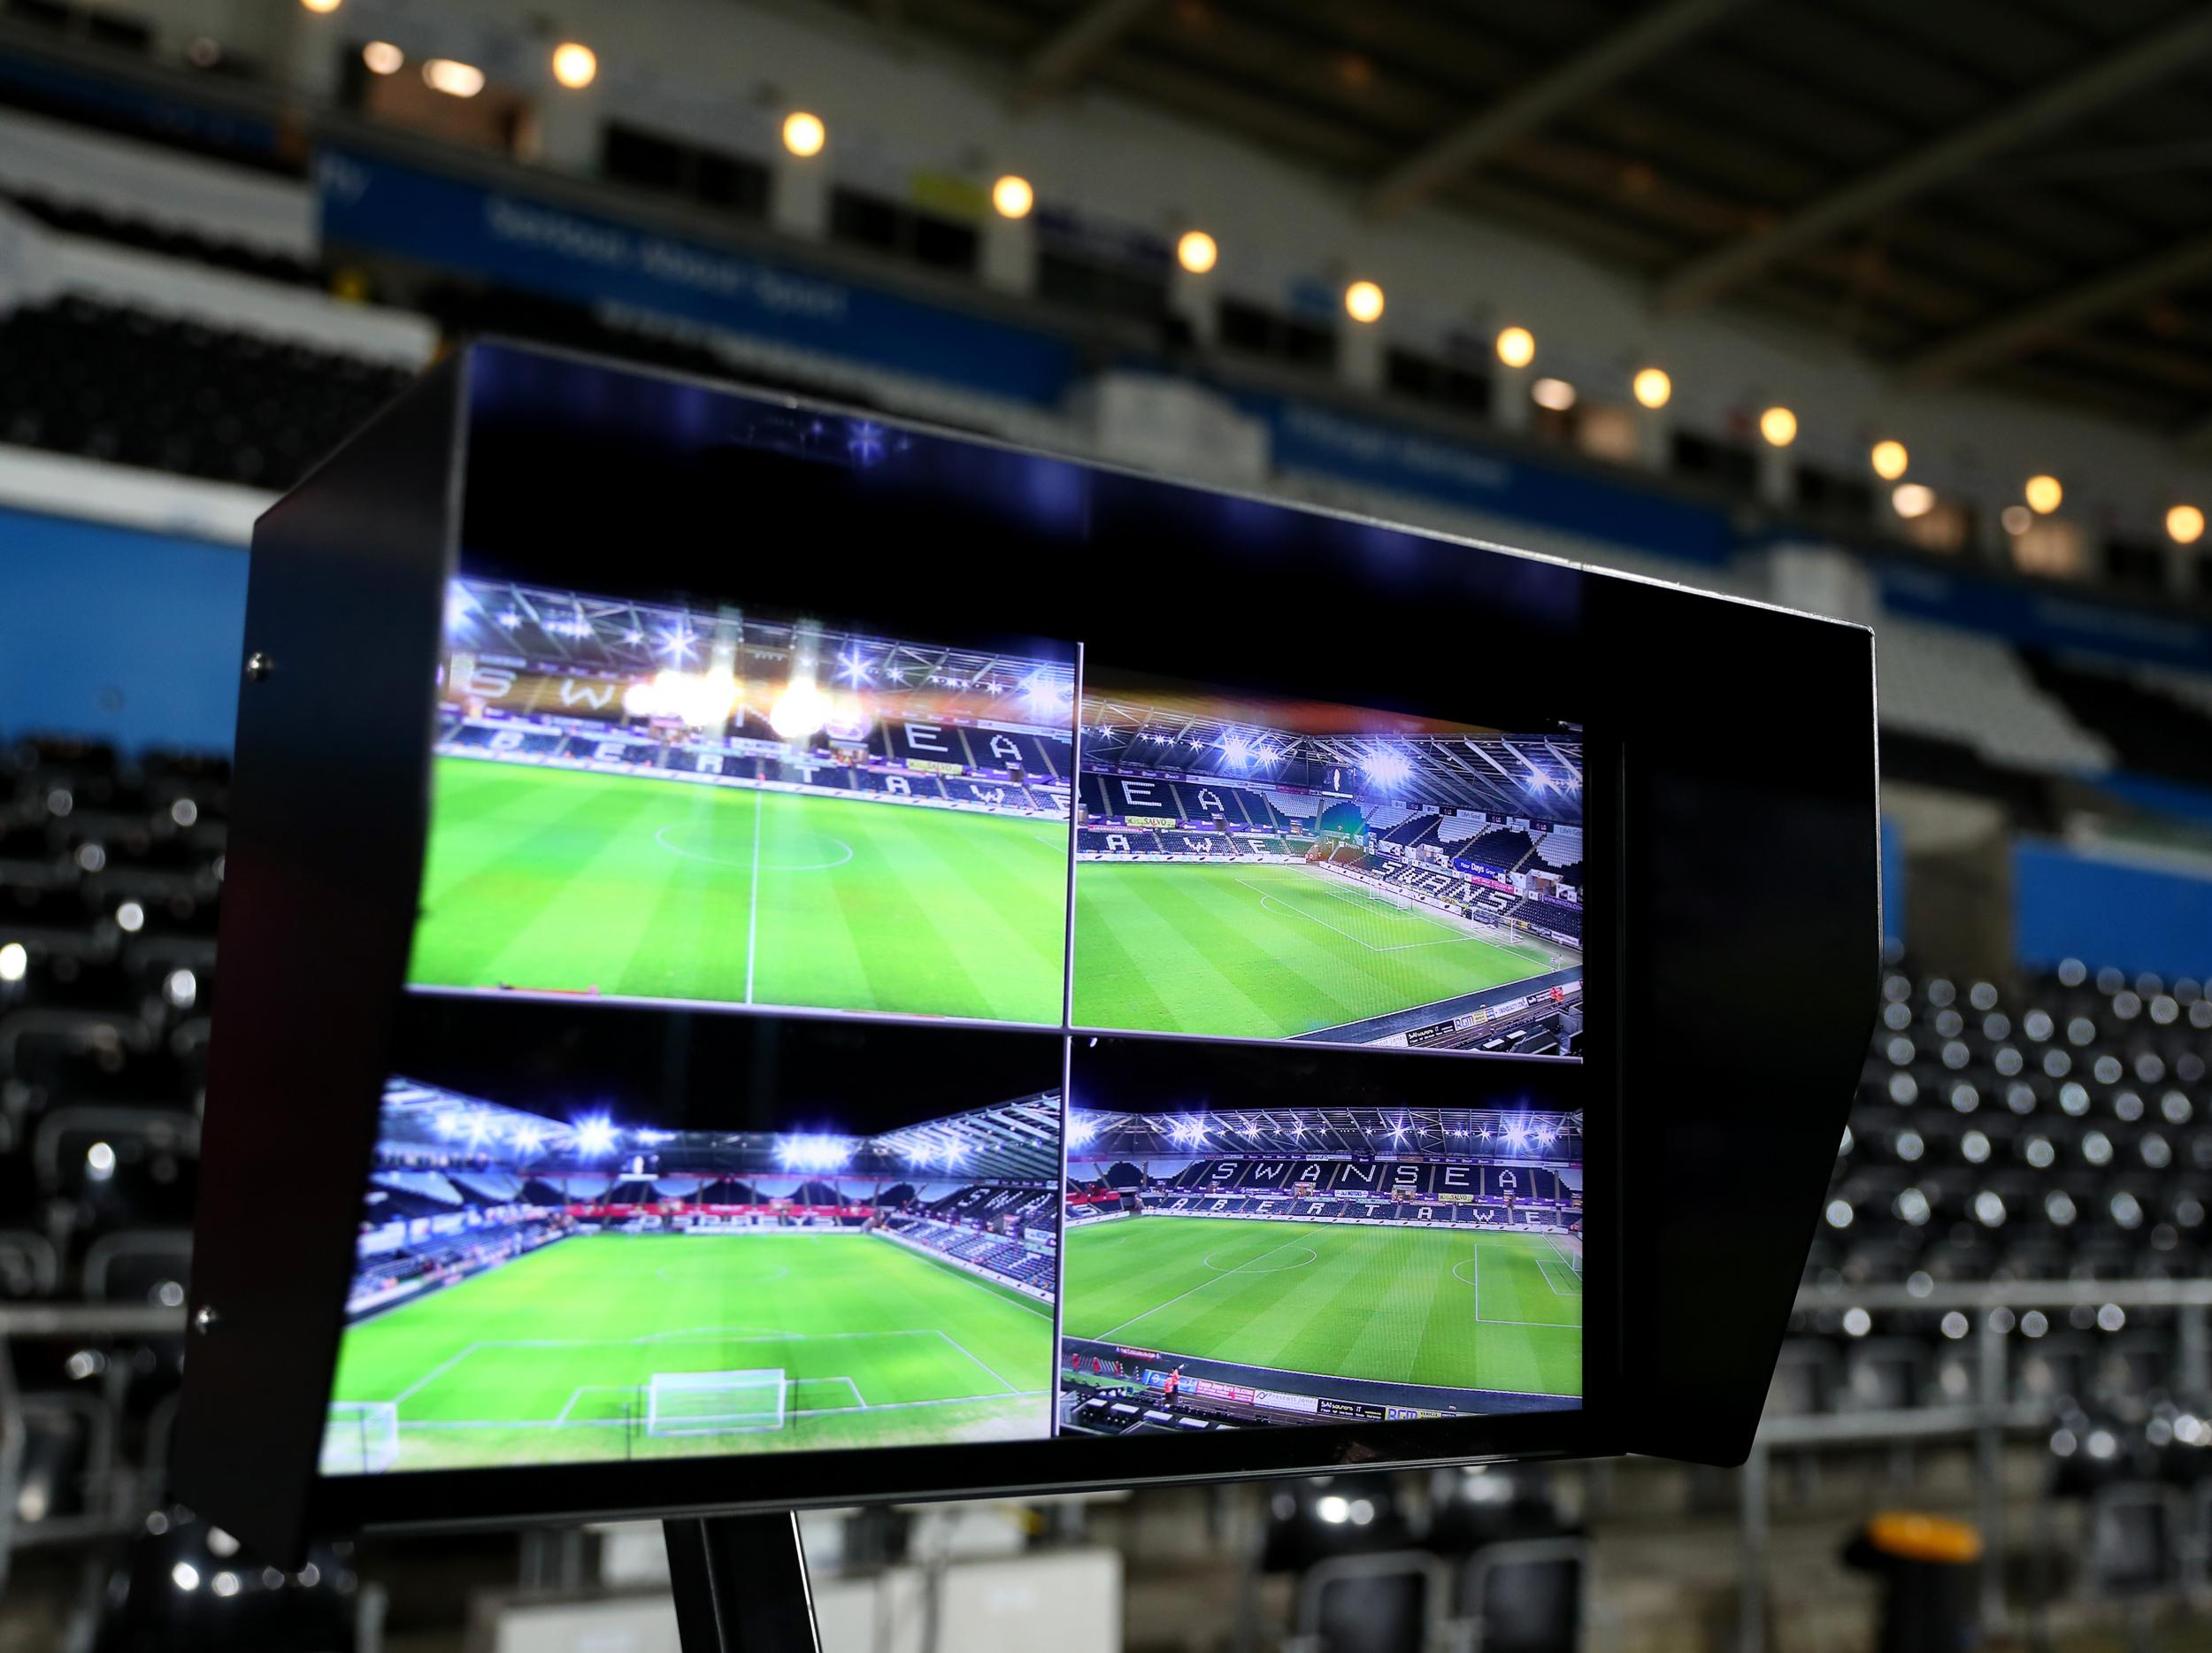 Fans demand professional referees and VAR in Leagues One and Two